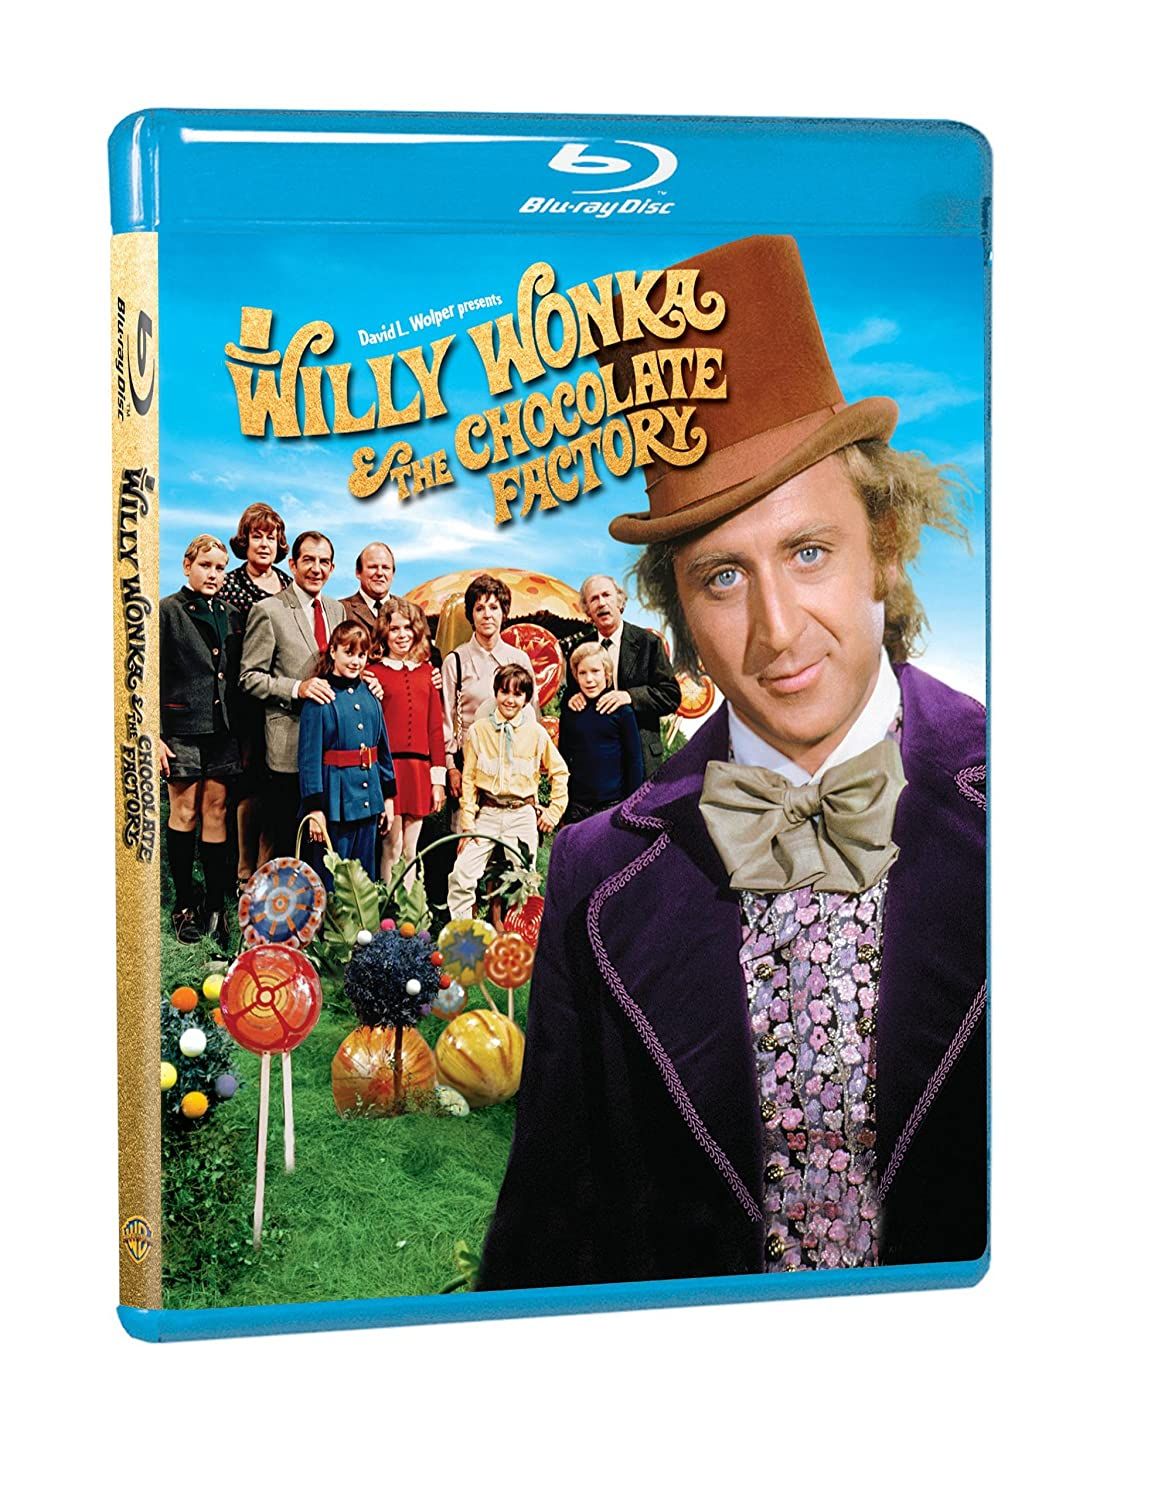 Amazon.com: Willy Wonka & the Chocolate Factory [Blu-ray]: Gene ...